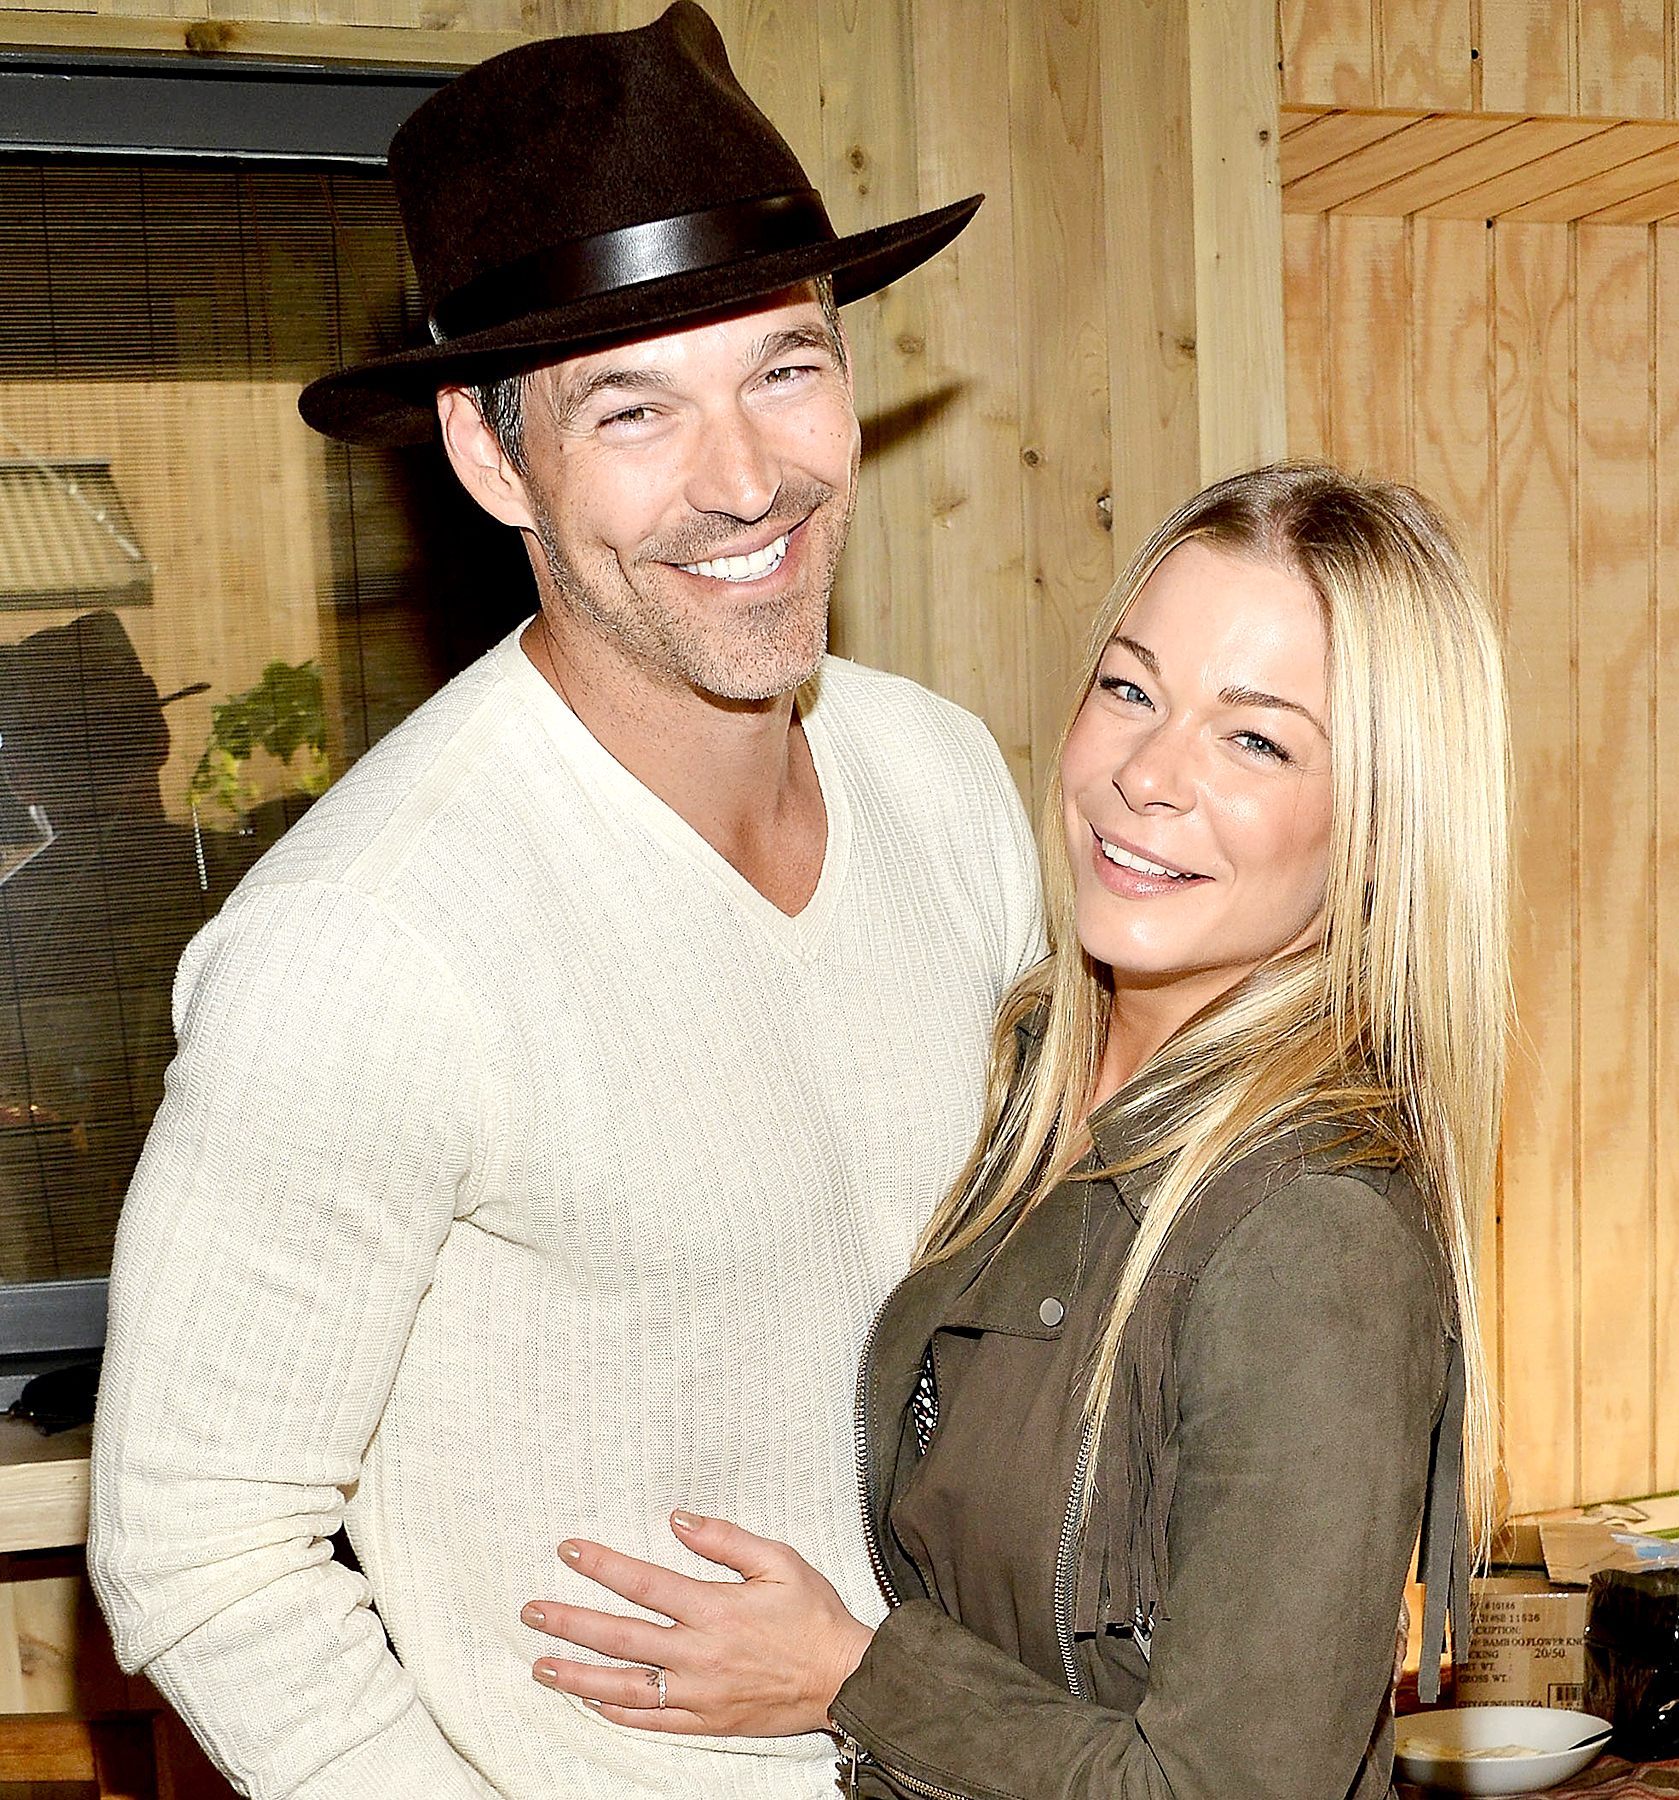 Eddie Cibrian and LeAnn Rimes attend the Project Angel Food presents in concert with Andrew von Oeyen on March 22, 2015 in Malibu, California.